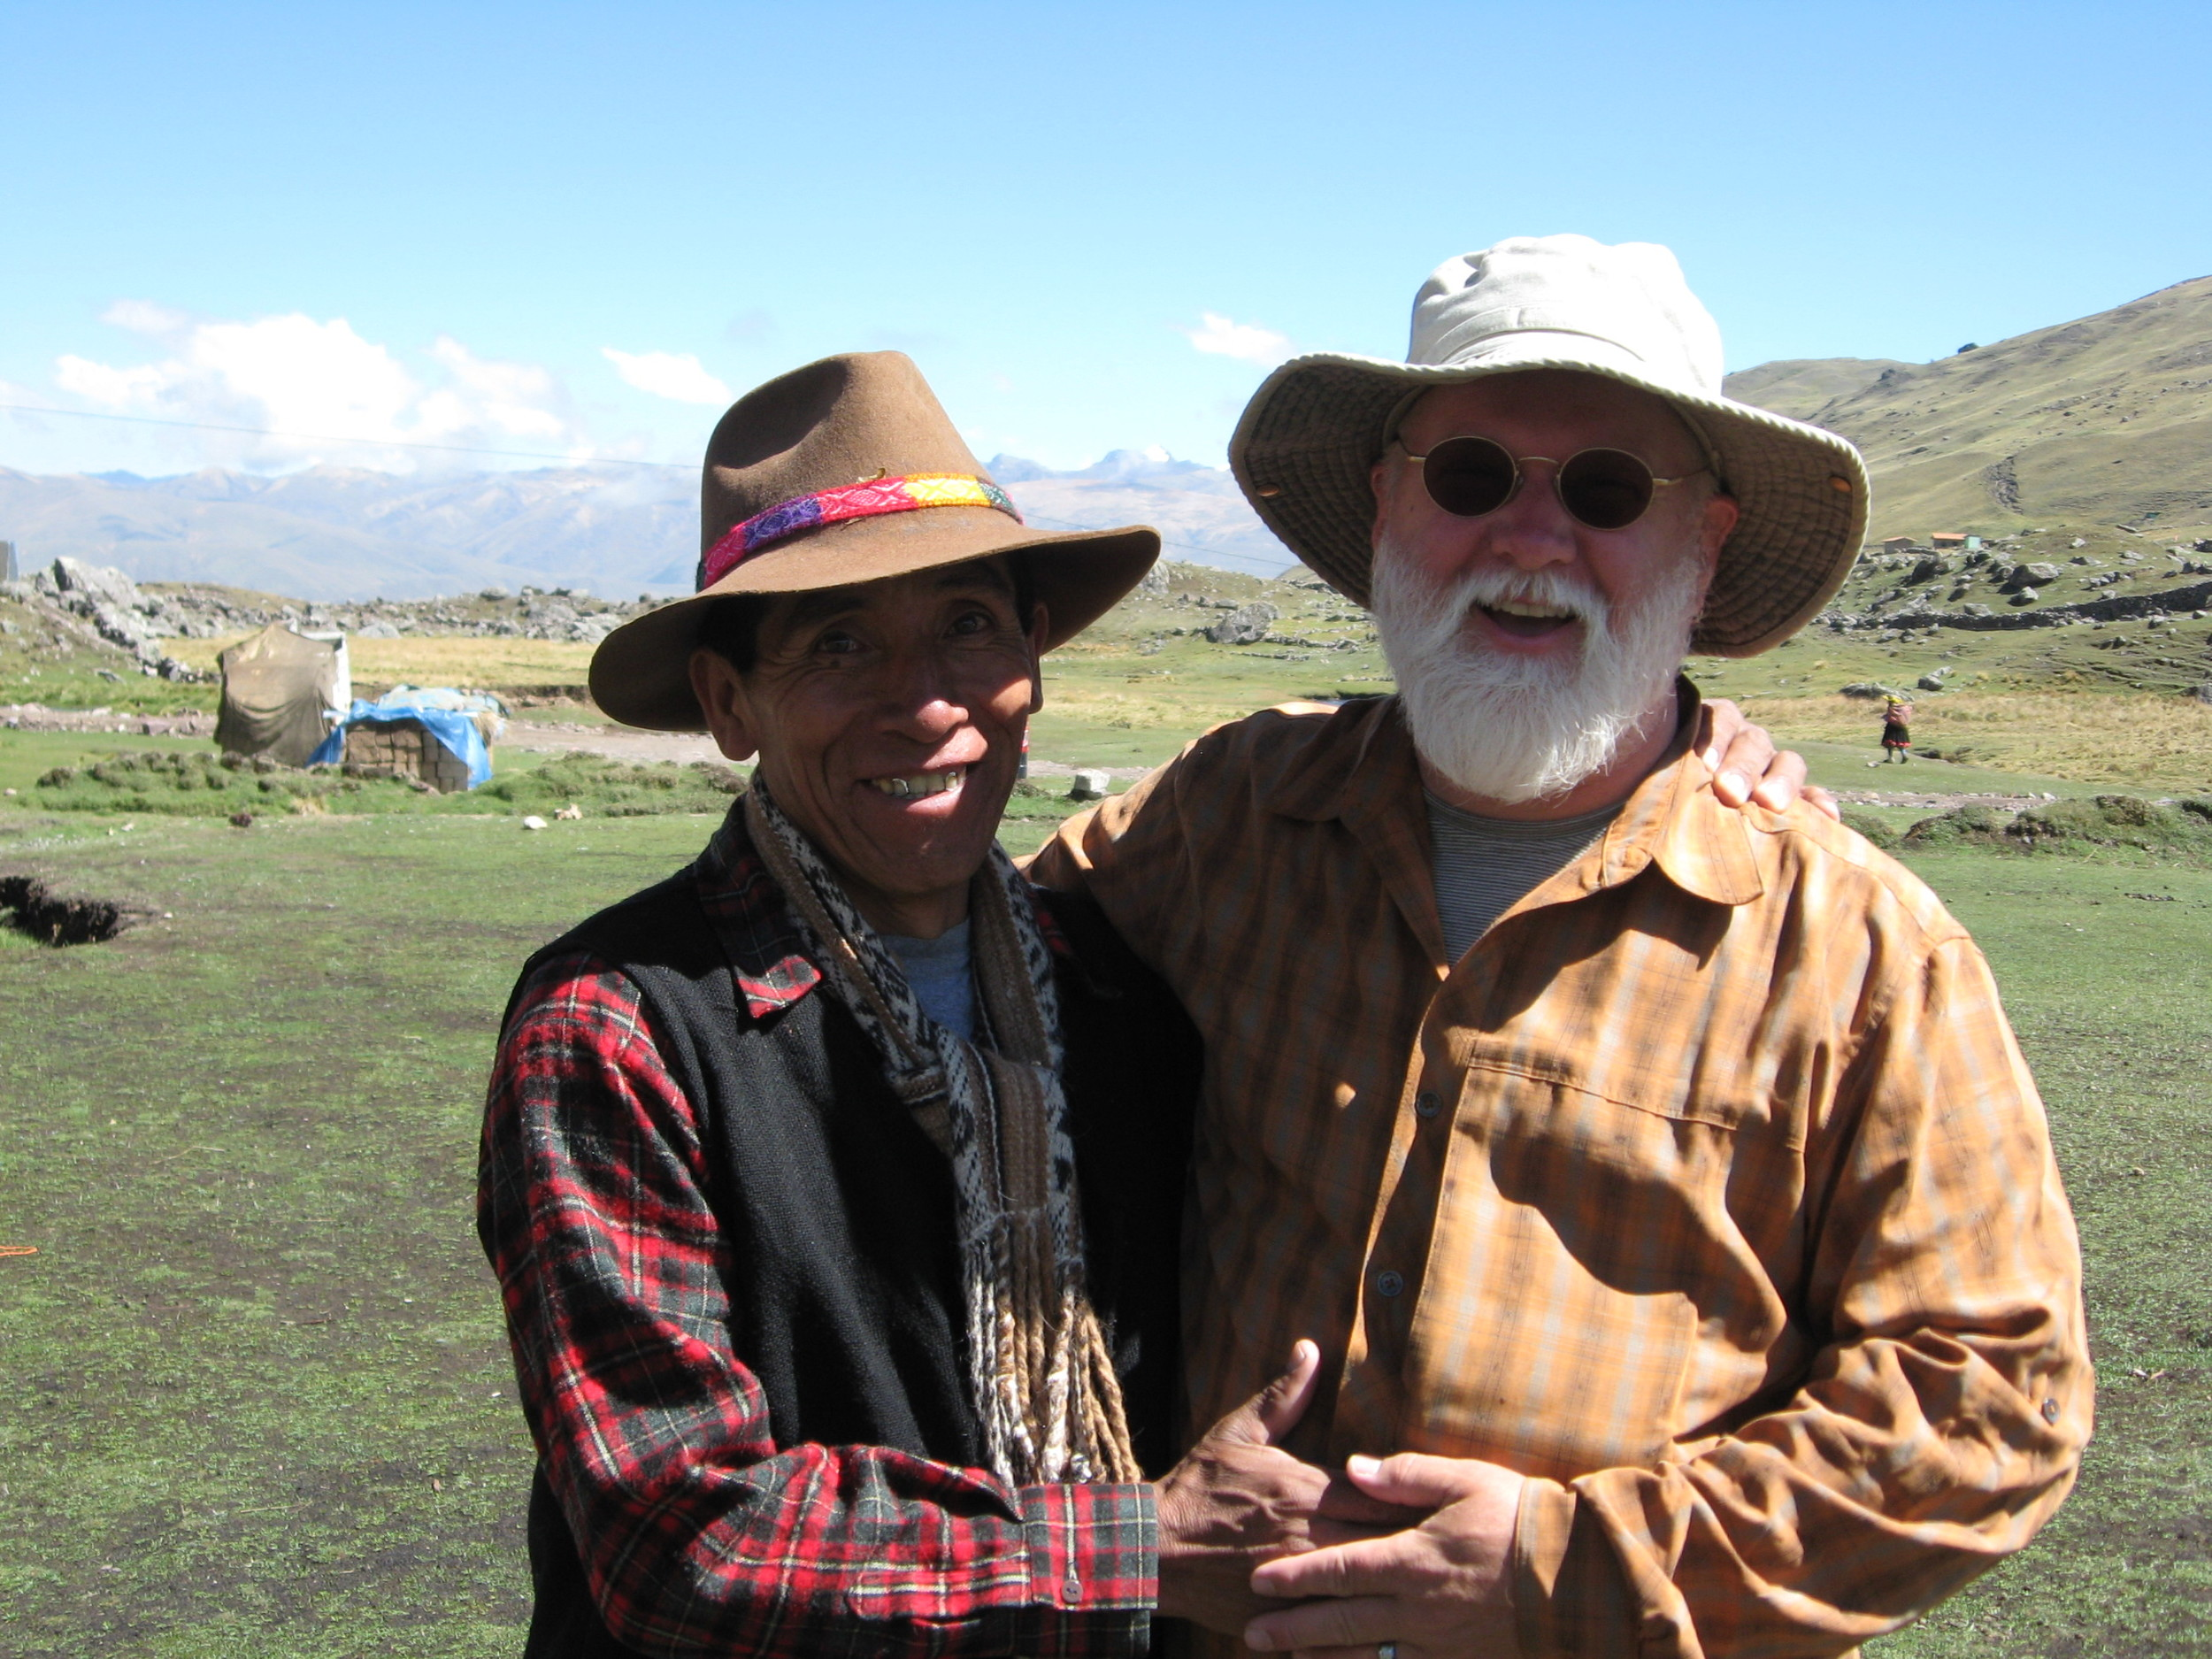 Jeffrey Rich shamanic healing practitioner with sweet Clemente in Peru, 2013